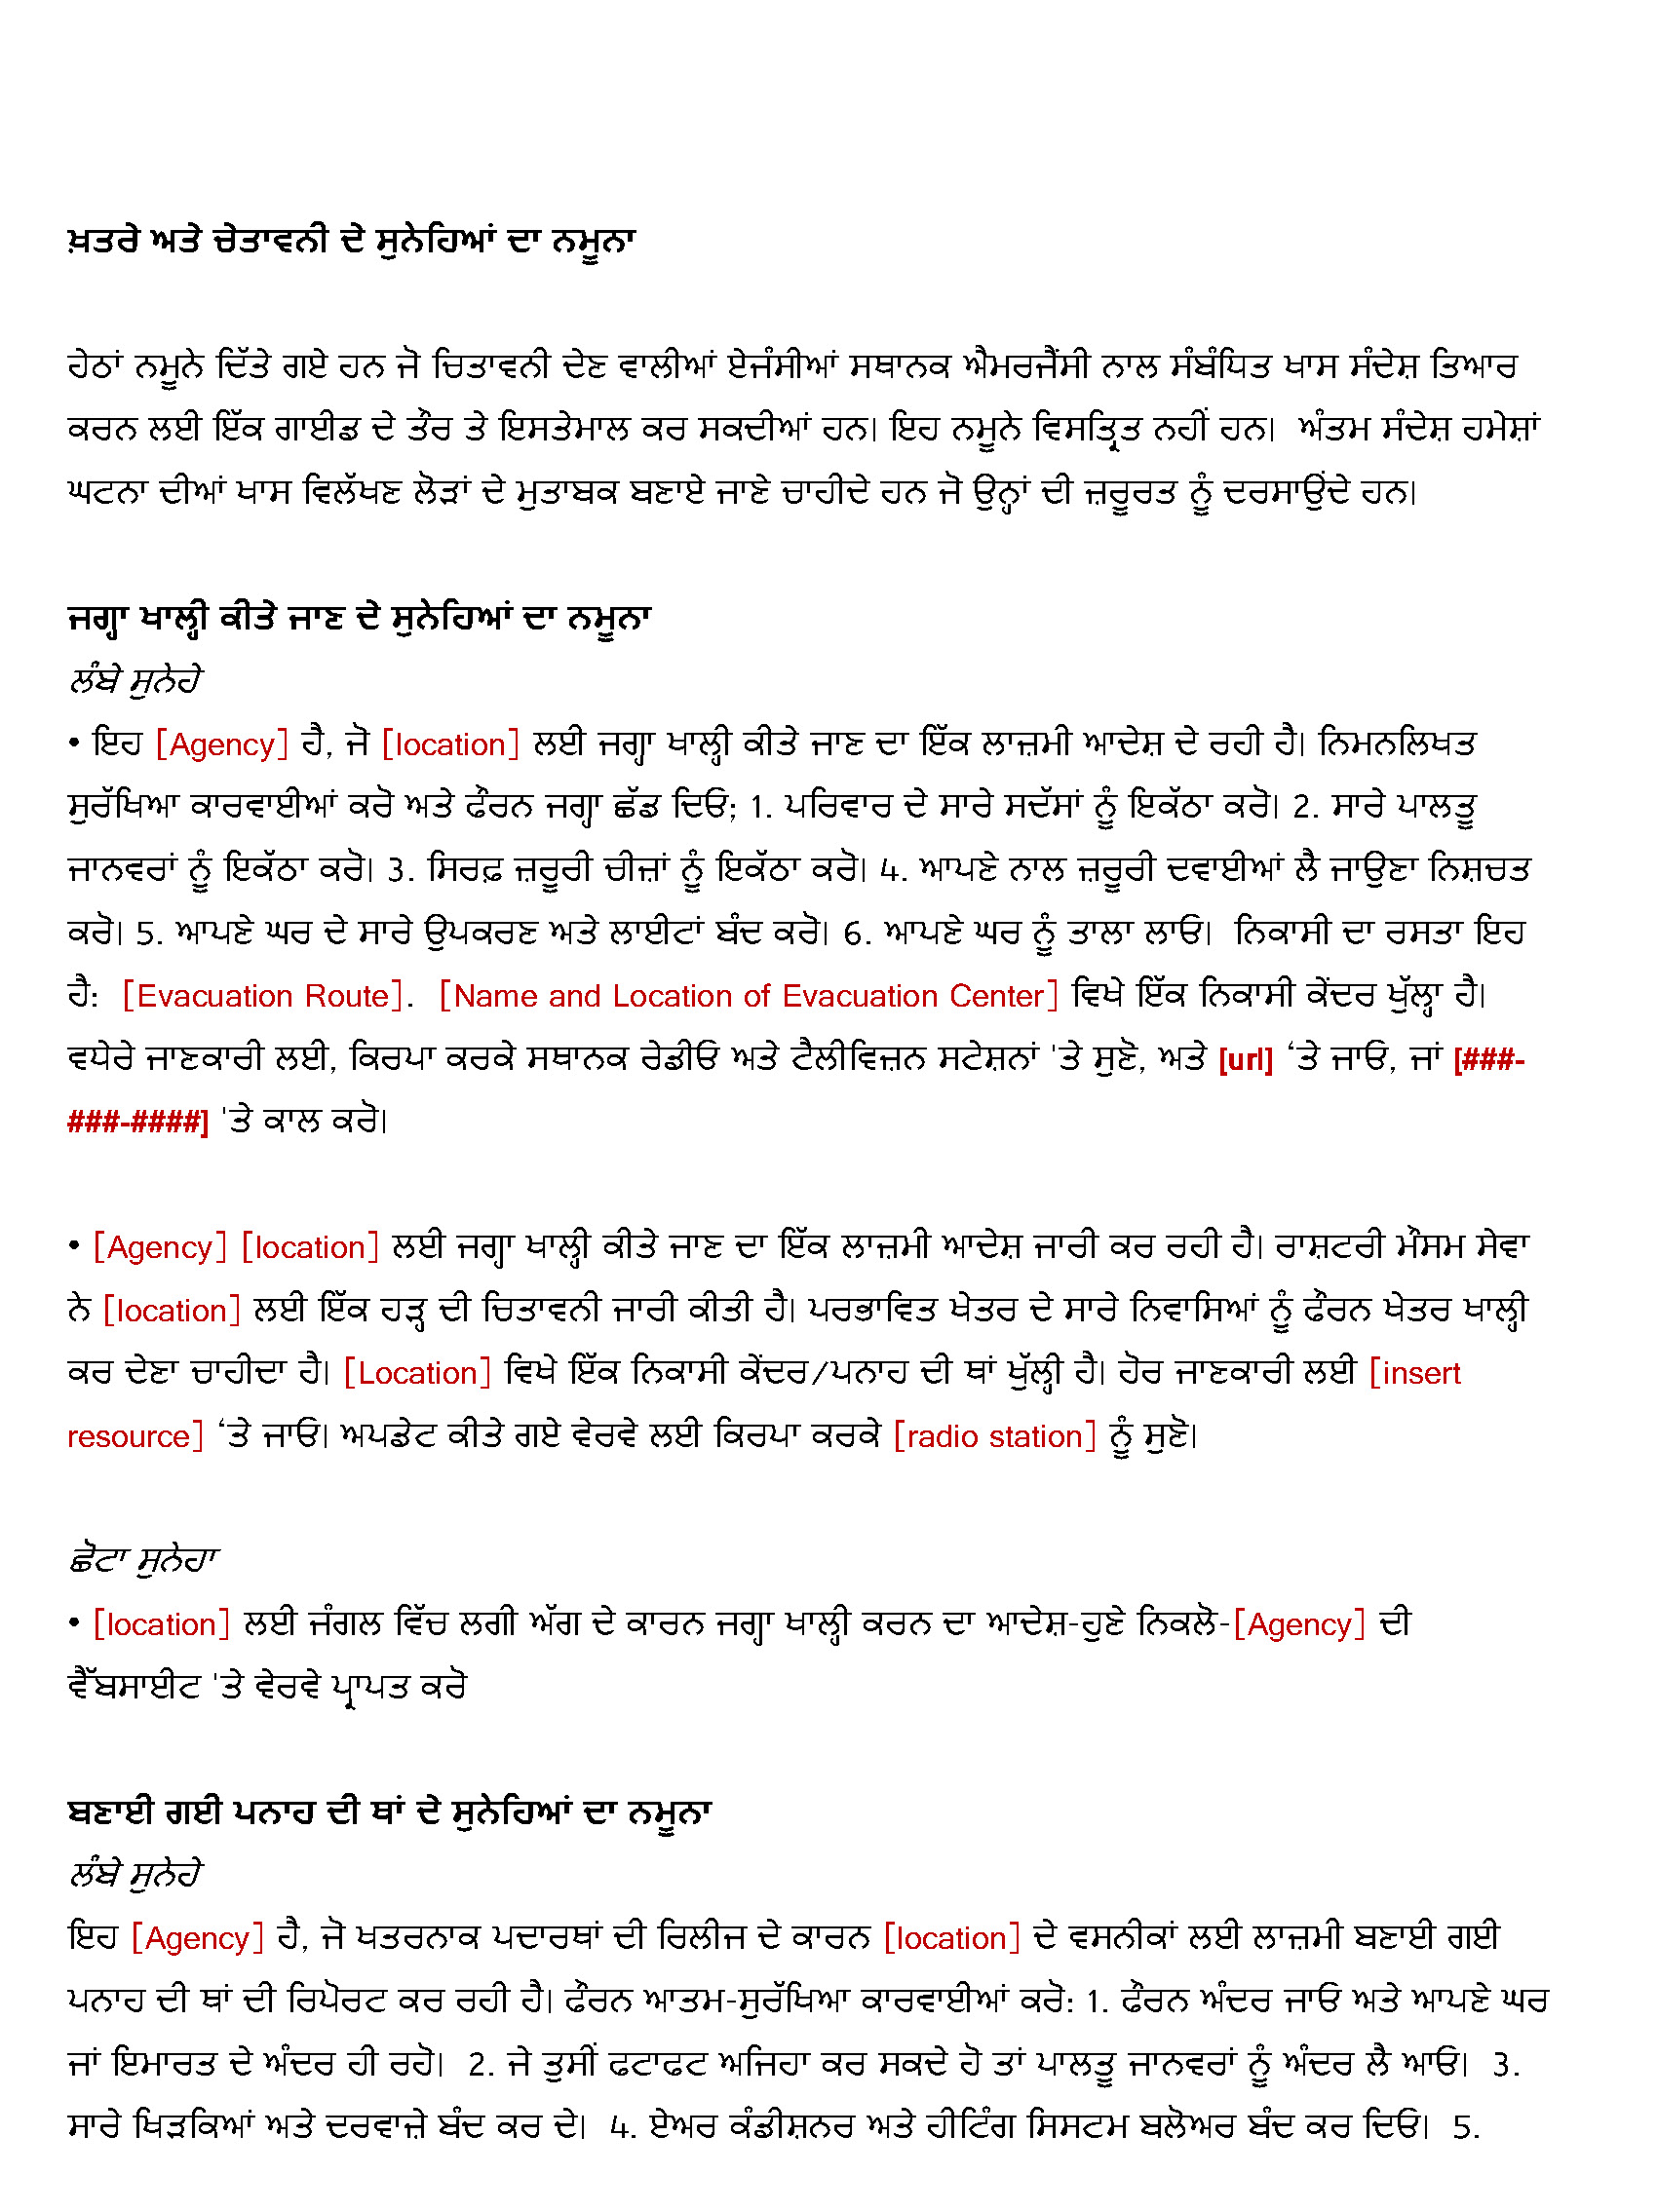 Image of the Sample AW Messages Punjabi document